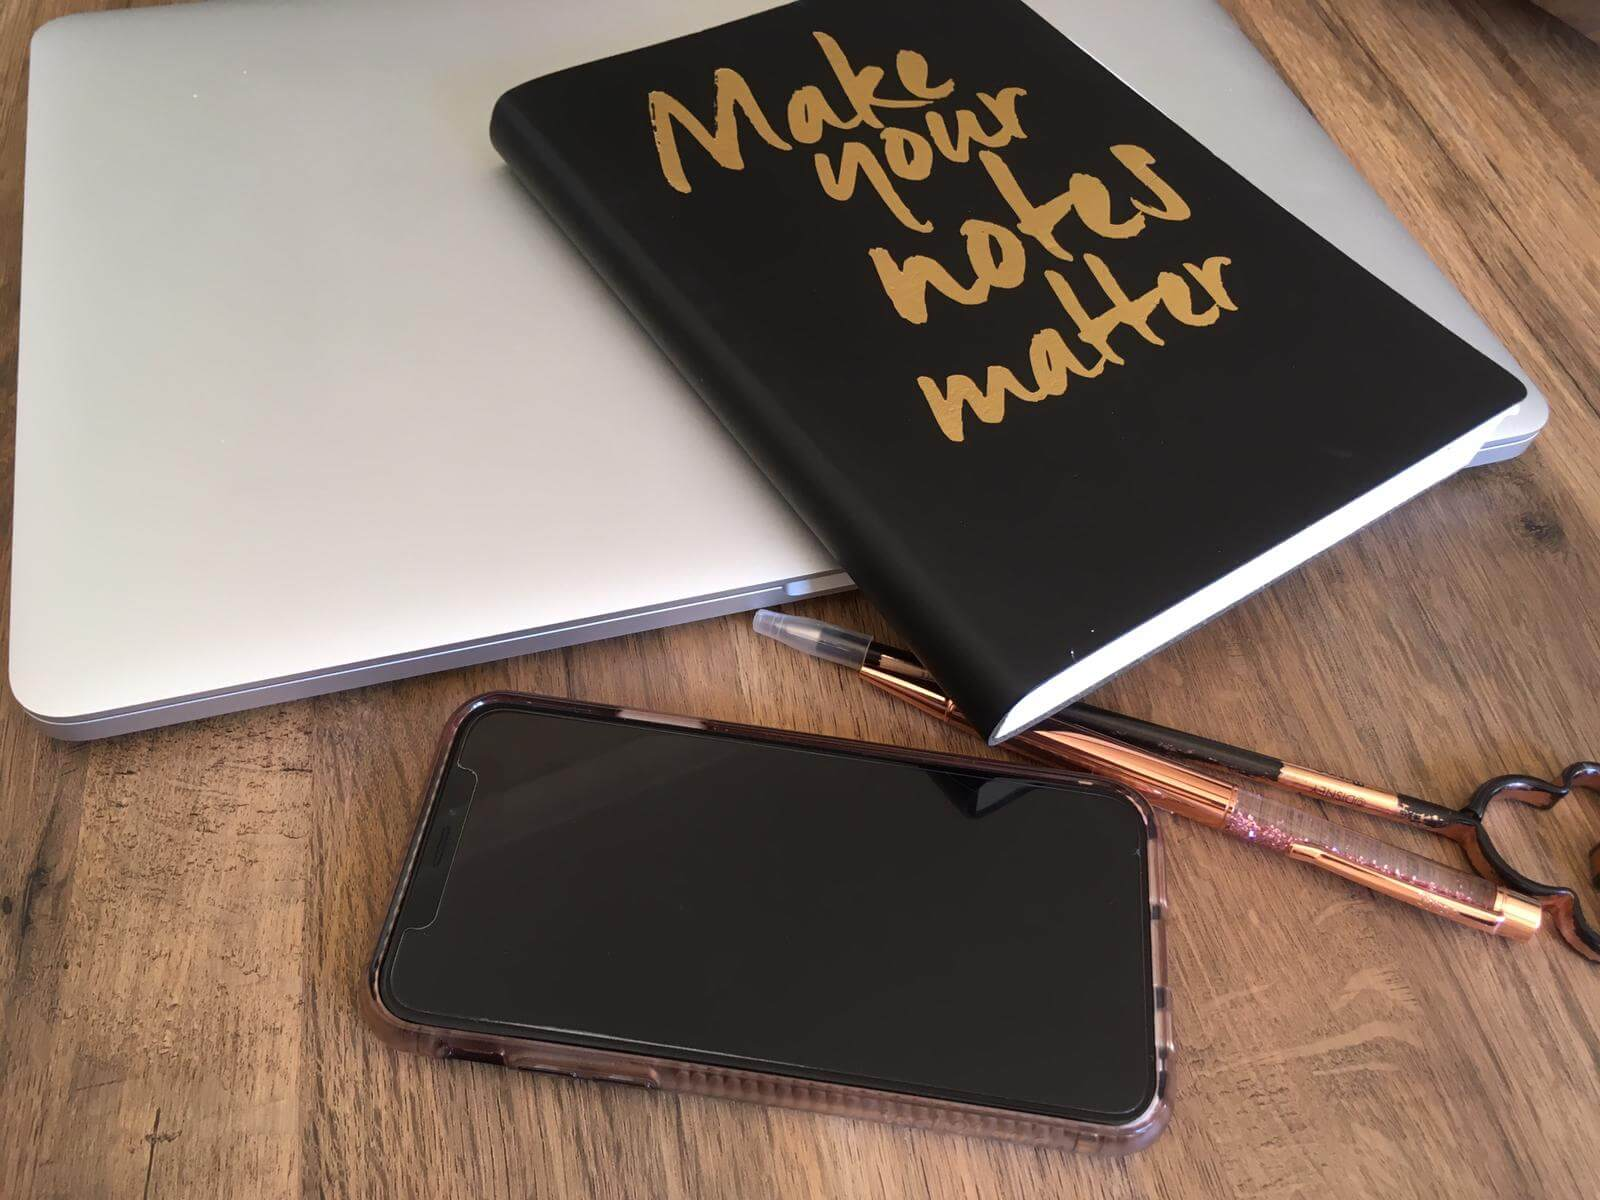 Note pad, laptop, pen, and phone image on a table